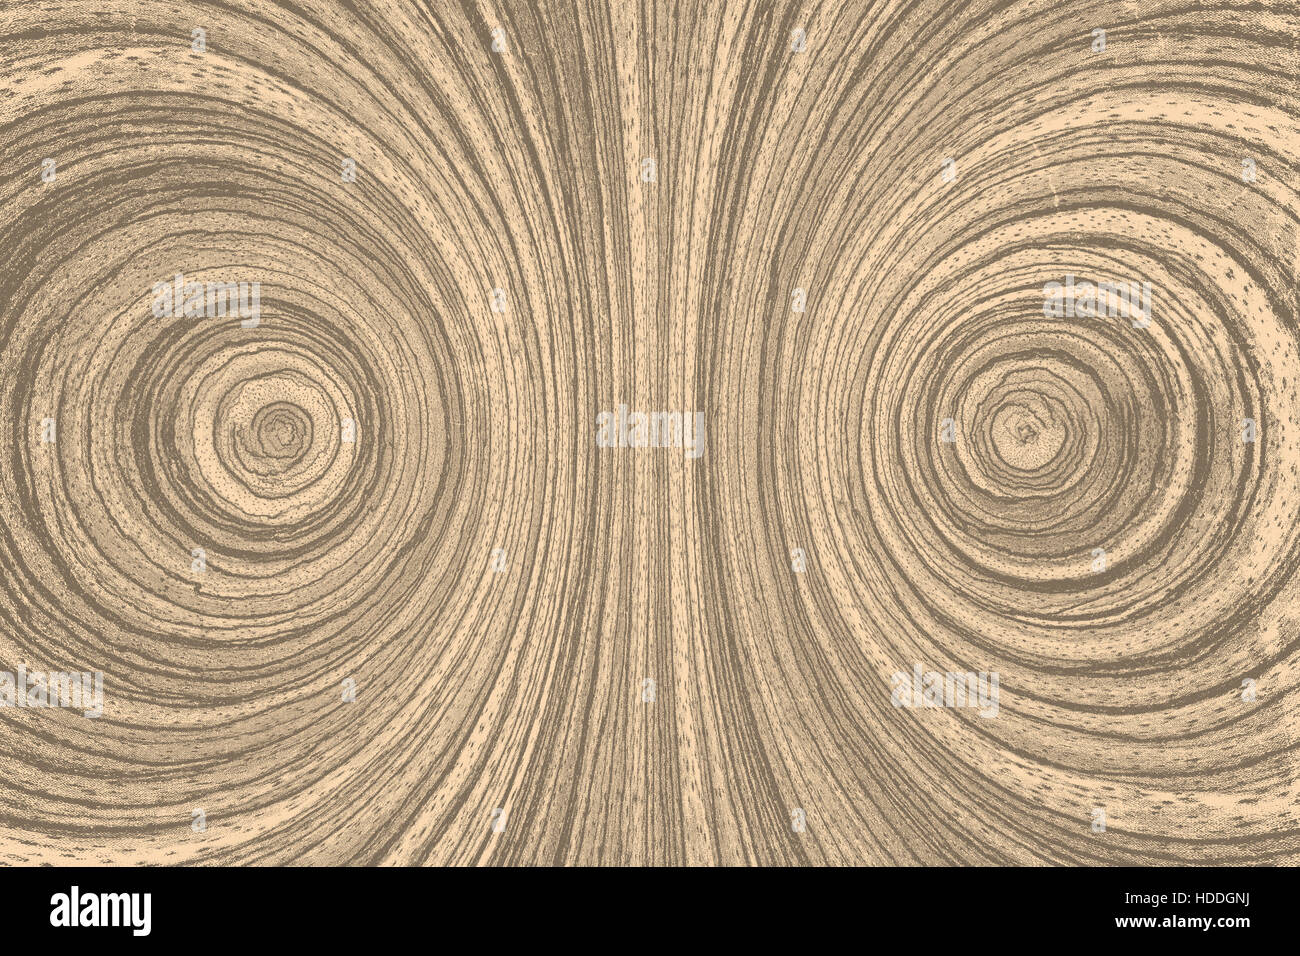 Grunge wooden wooden background - layer for photo editor. - Stock Image